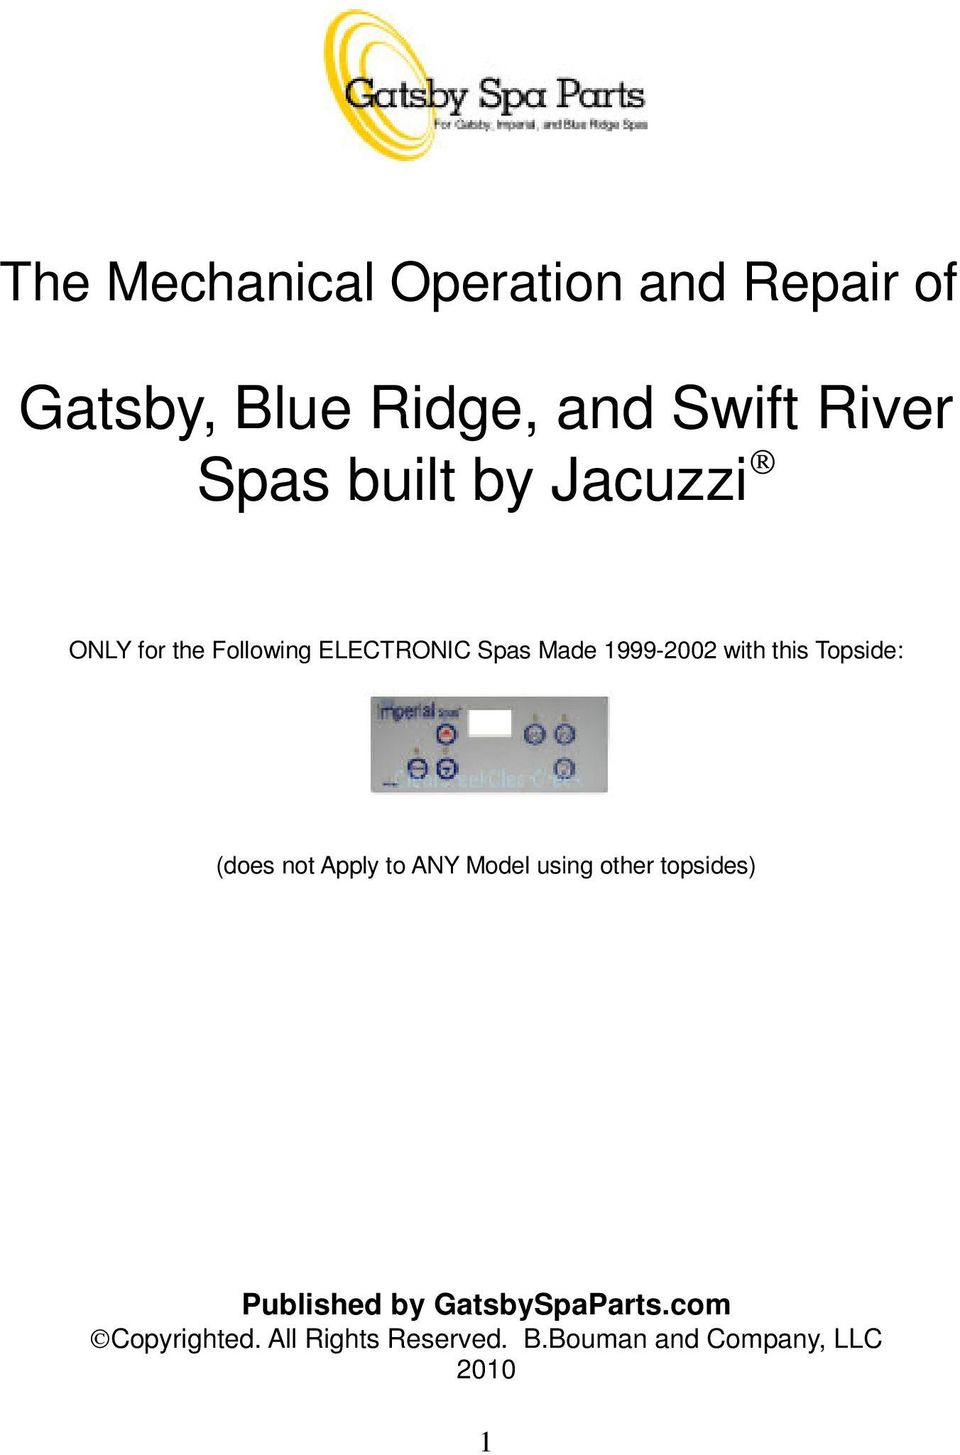 Gatsby Spa Wiring Diagram Schematic Diagrams Master Blue Ridge And Swift River Spas Built By Jacuzzi Pdf